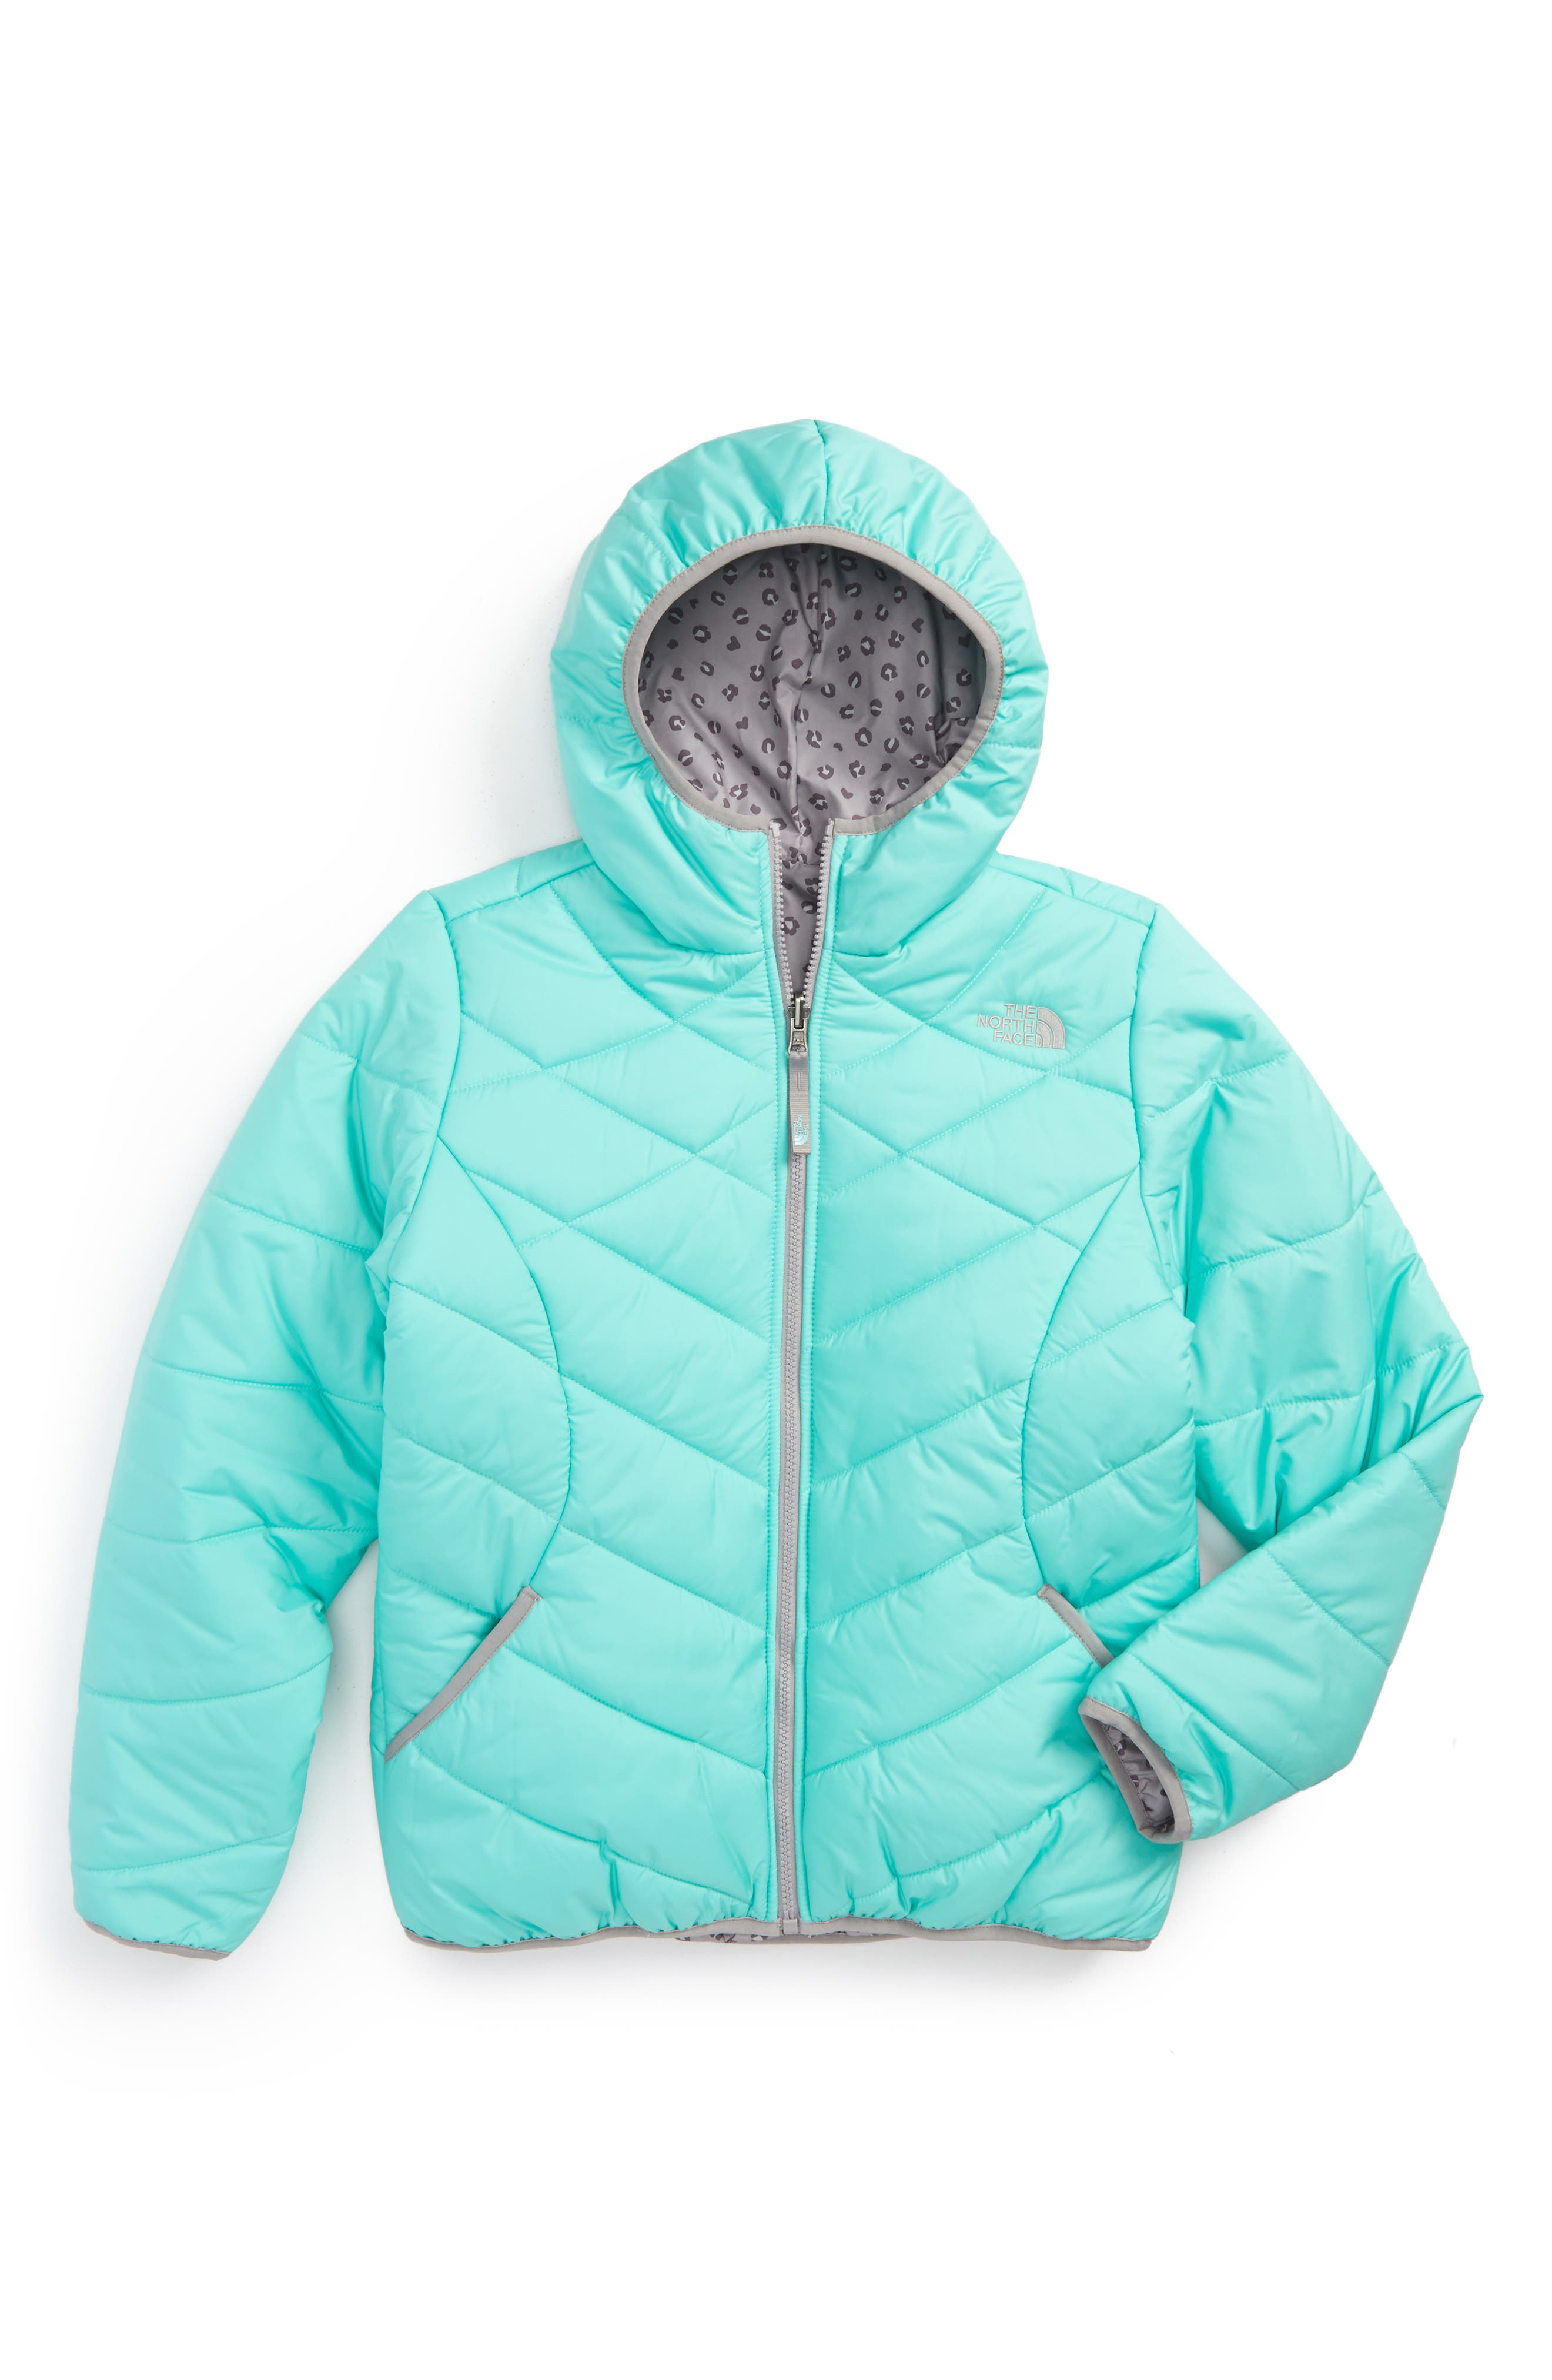 Main Image - The North Face Perrito Reversible Hooded Jacket (Little Girls & Big GIrls)